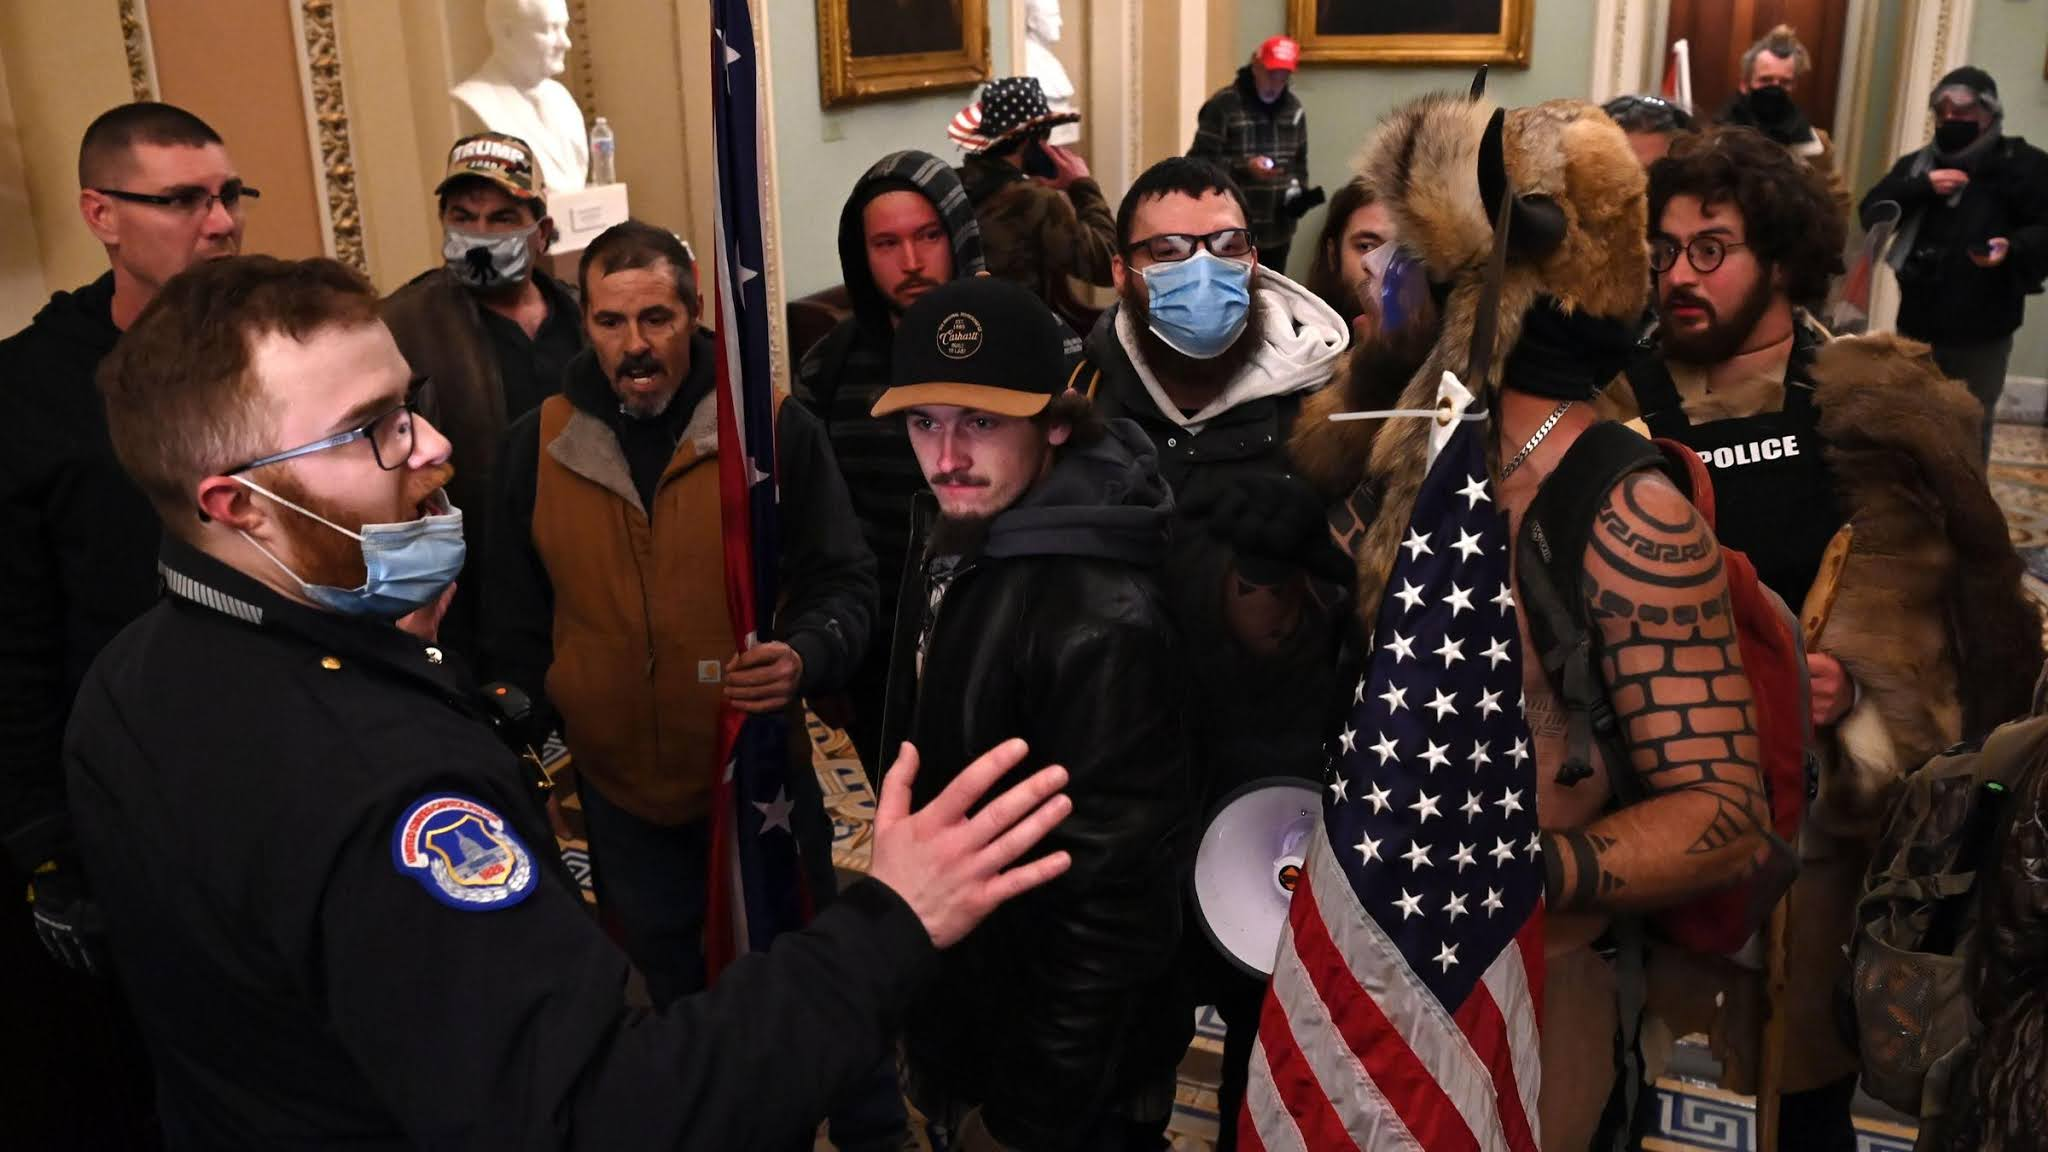 'Strong evidence' shows Pro-Trump supporters intended to kill Mike Pence, members of congress during U.S. Capitol riot, prosecutors say